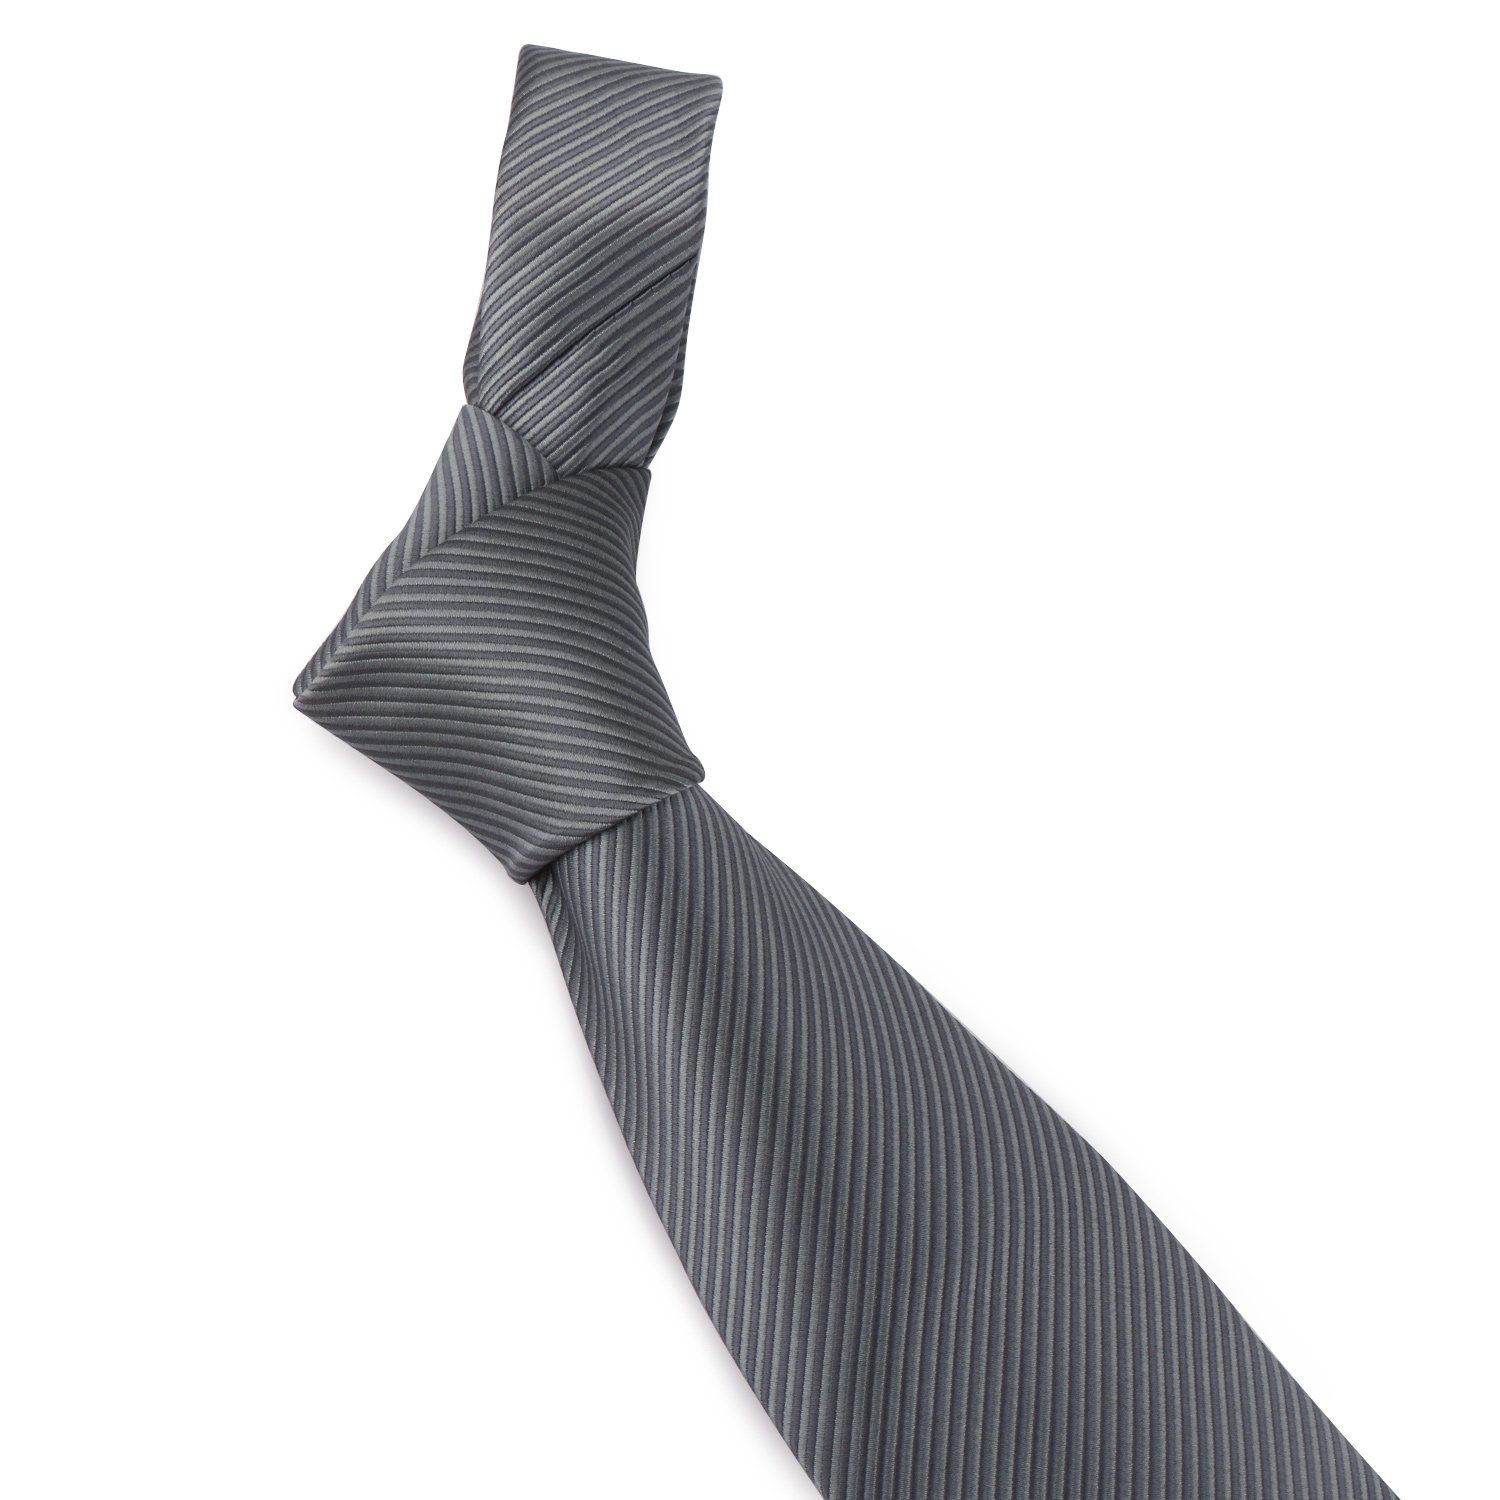 Mens Necktie Classic Striped Neckties, 54'' Long Polyester Solid Grey Neck Tie, Seasonless Formal Casual Business Necktie by Segbeauty (Image #5)